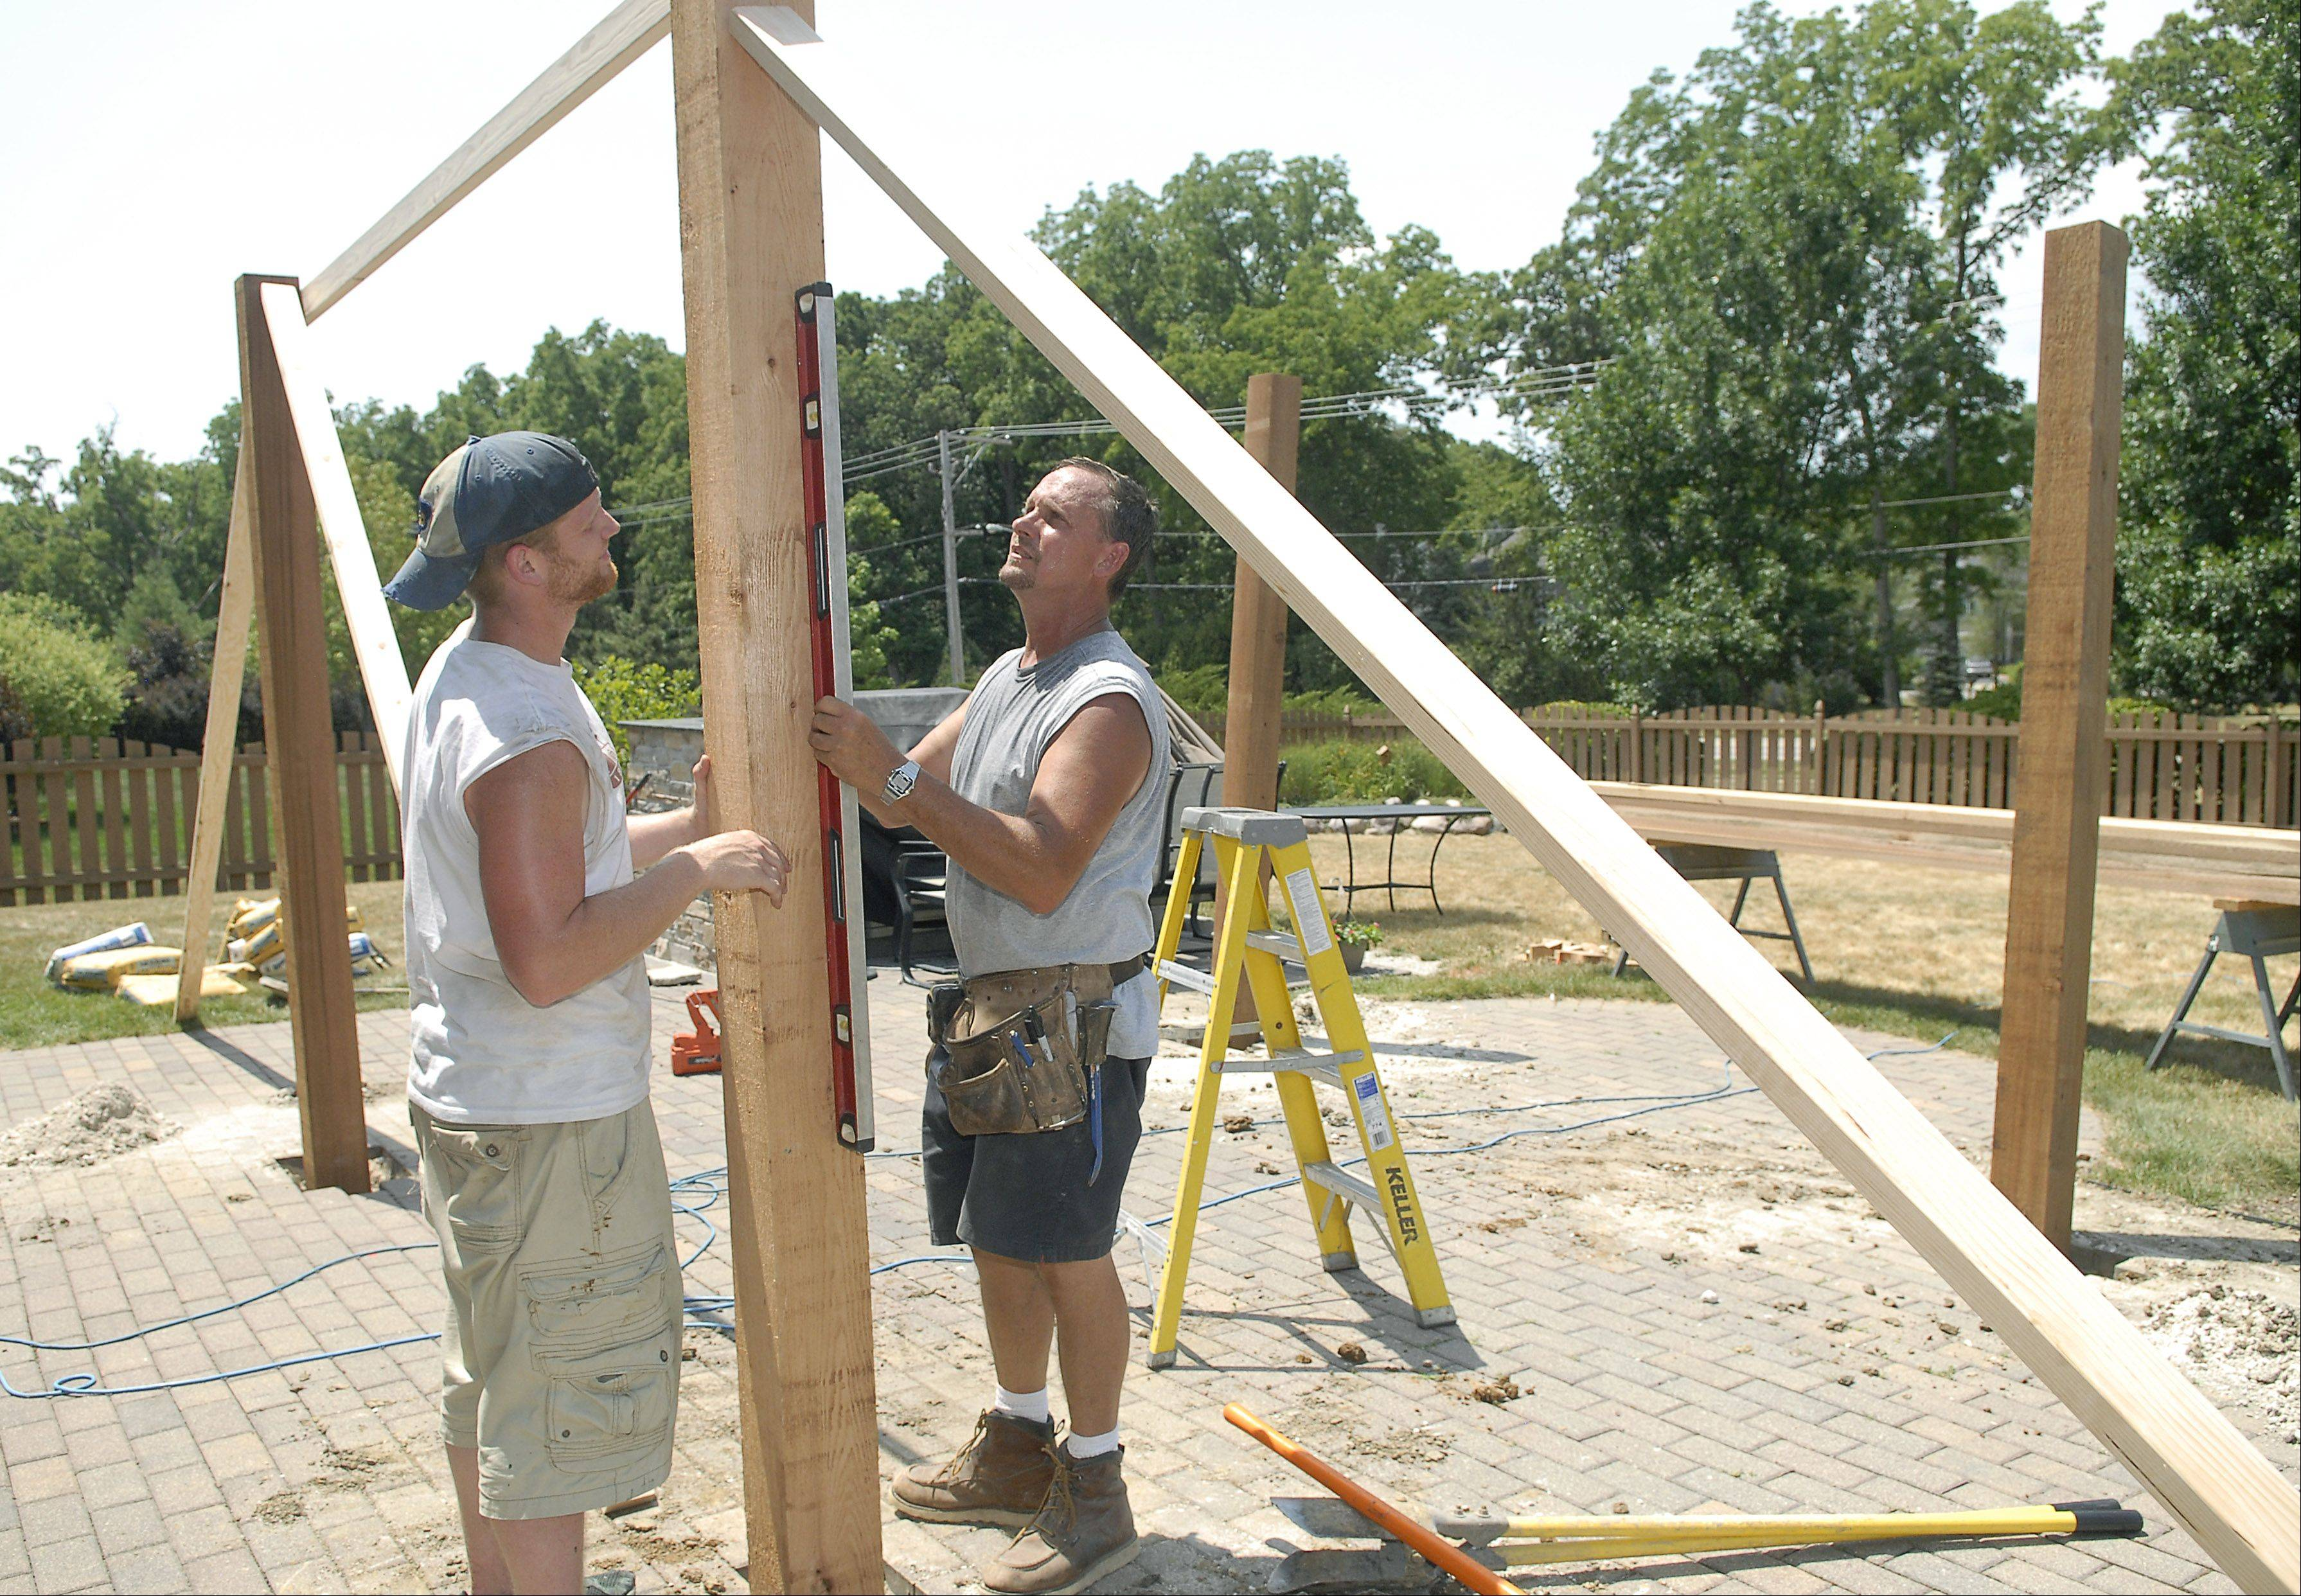 "Joe Weston, owner of JW Construction out of Lake Geneva, WI, and employee Max Hanna work on installing a pergola in the back yard of a Carpentersville home on Thursday, July 5. Weston likes to start early in order end early on hot days like this. He finds the extreme heat easier to deal with than extreme cold. ""The heat's easier to deal with. You can take a lot of breaks."" They manage the heat and are able to continue working in it by taking several water breaks in the shade. Hanna was ok in the heat as well saying, ""Starting early makes you feel better."" He jokingly added the heat makes for, ""Easy weight loss."""